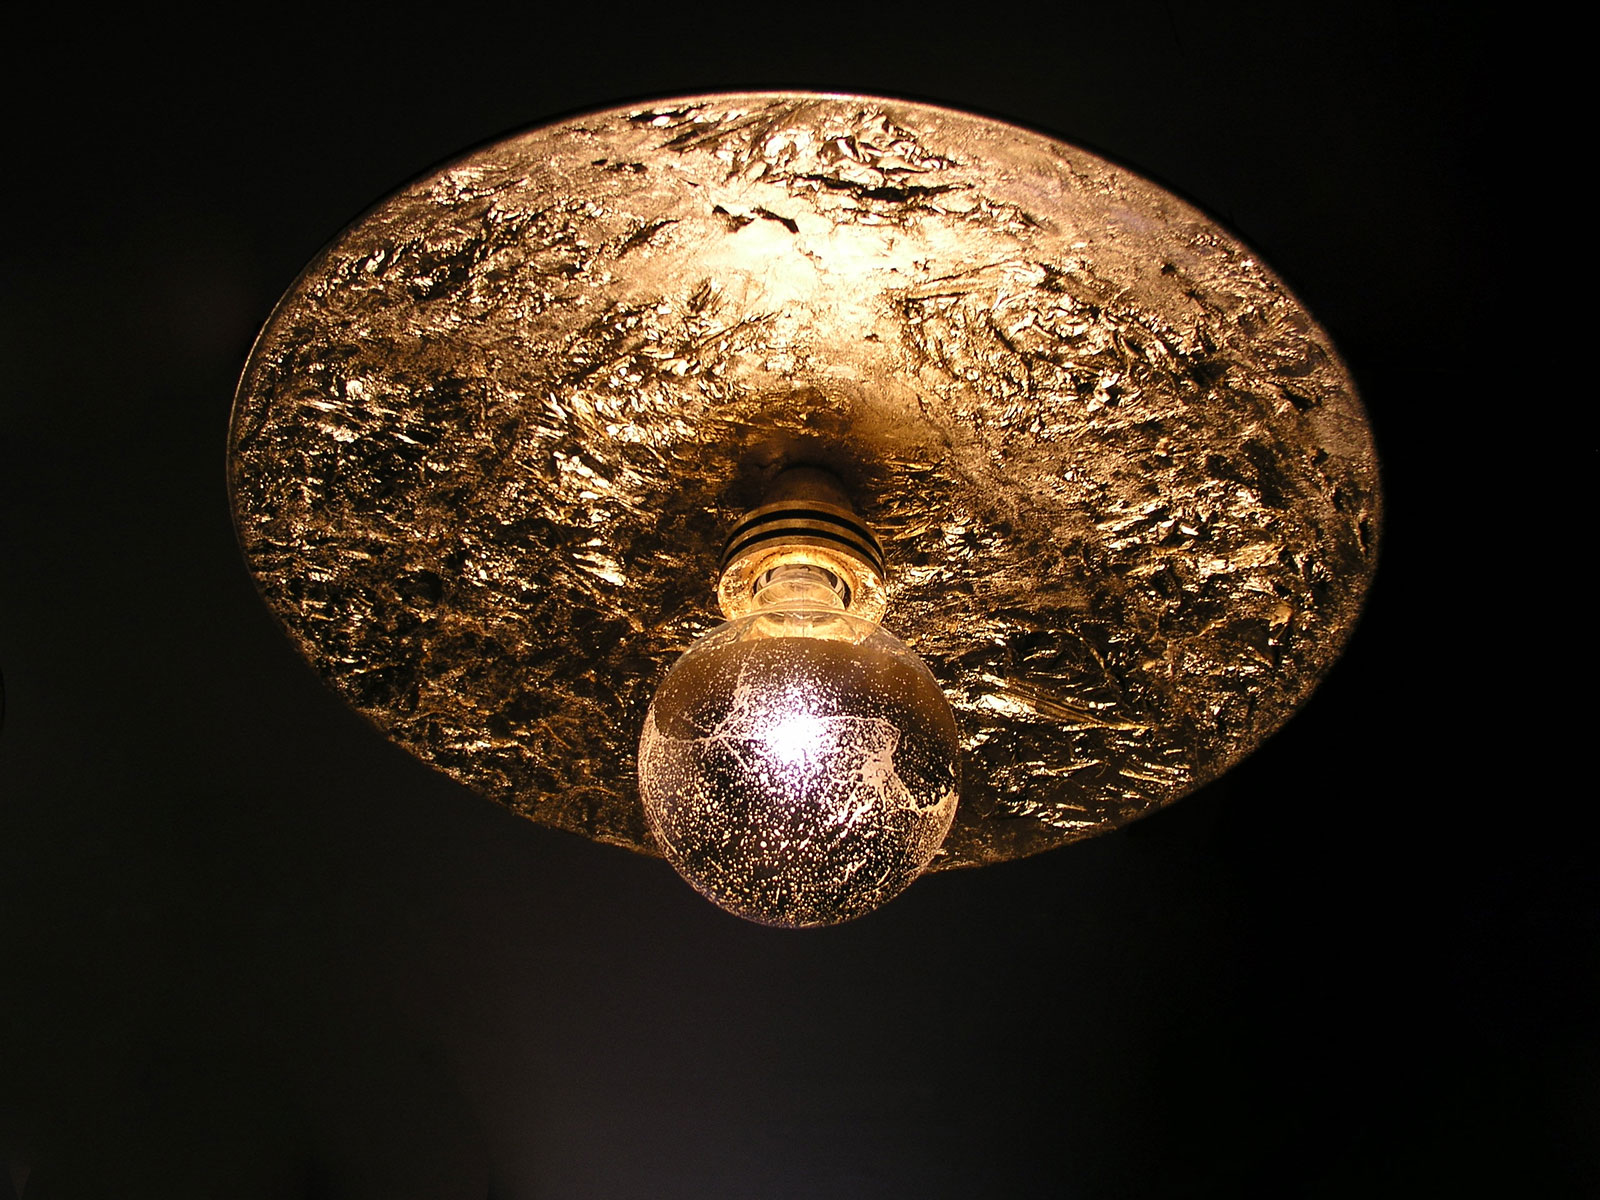 Sun Large - Ceiling Light fixture